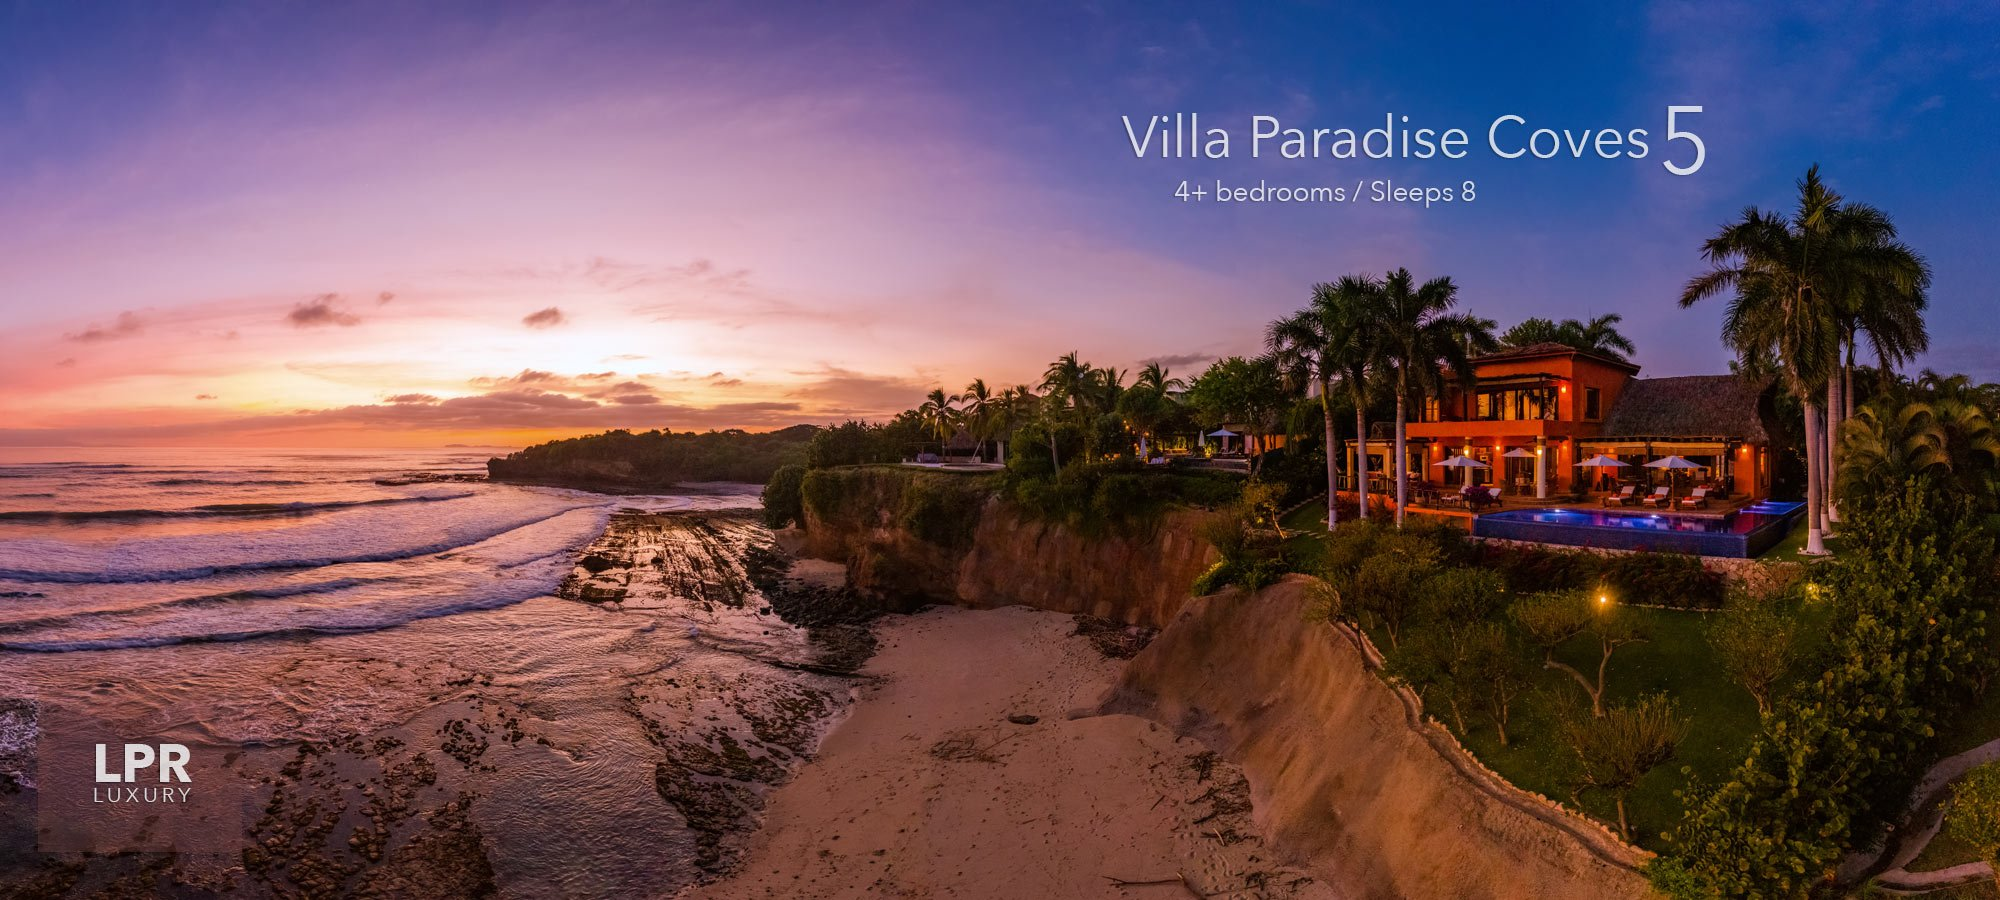 Villa Paradise Coves 5 - Luxury Punta de Mita Vacation Rental Villa - Riviera Nayarit, Mexico`